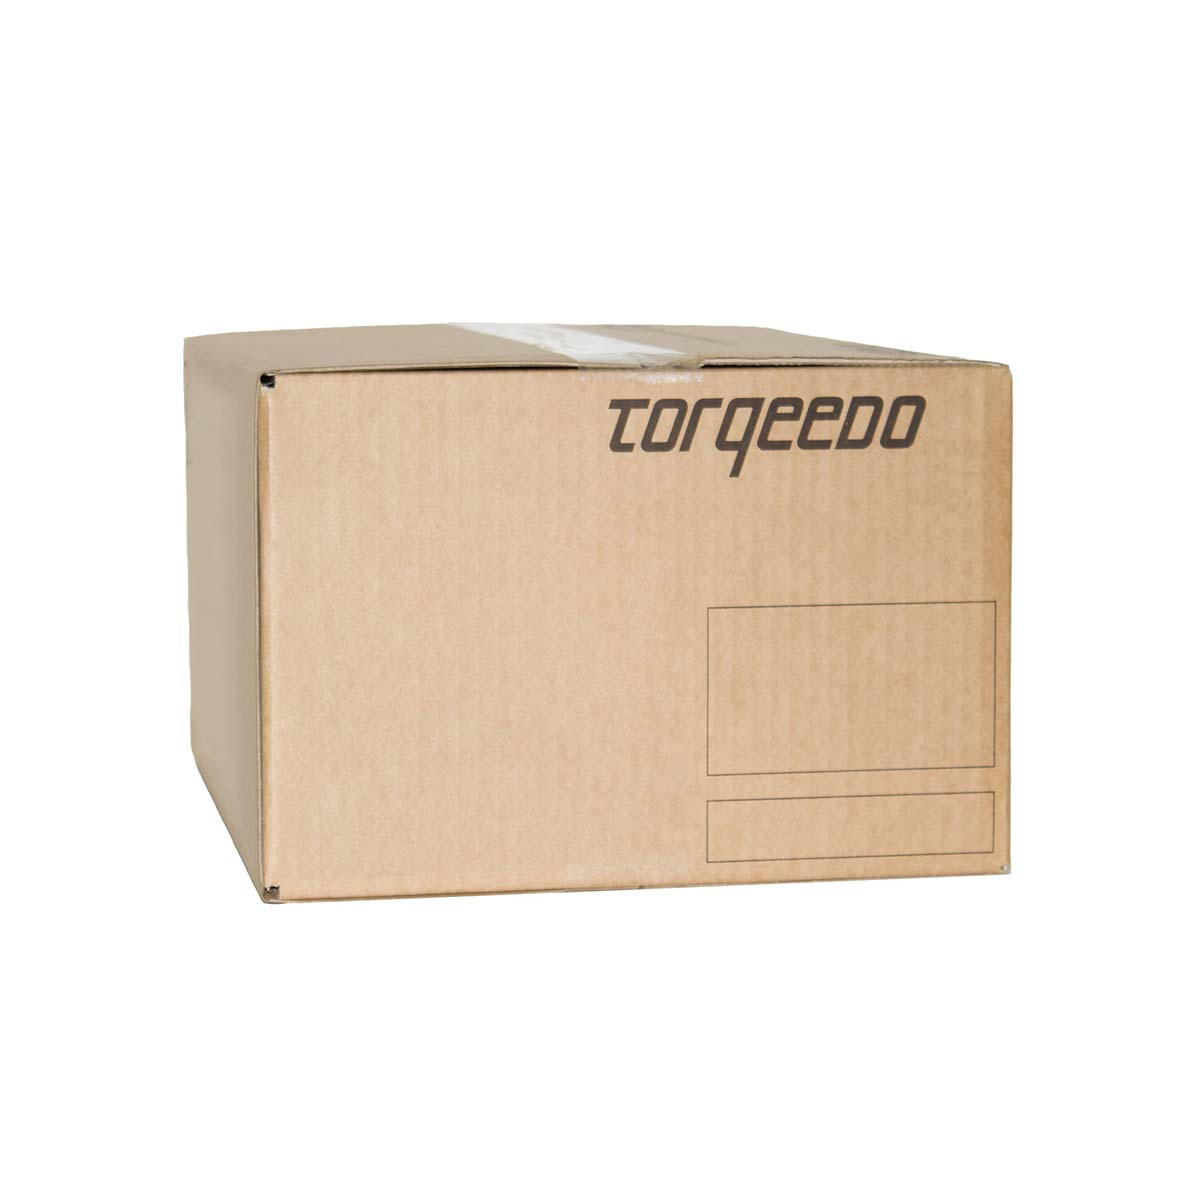 Torqeedo Packaging Cruise TL compl.